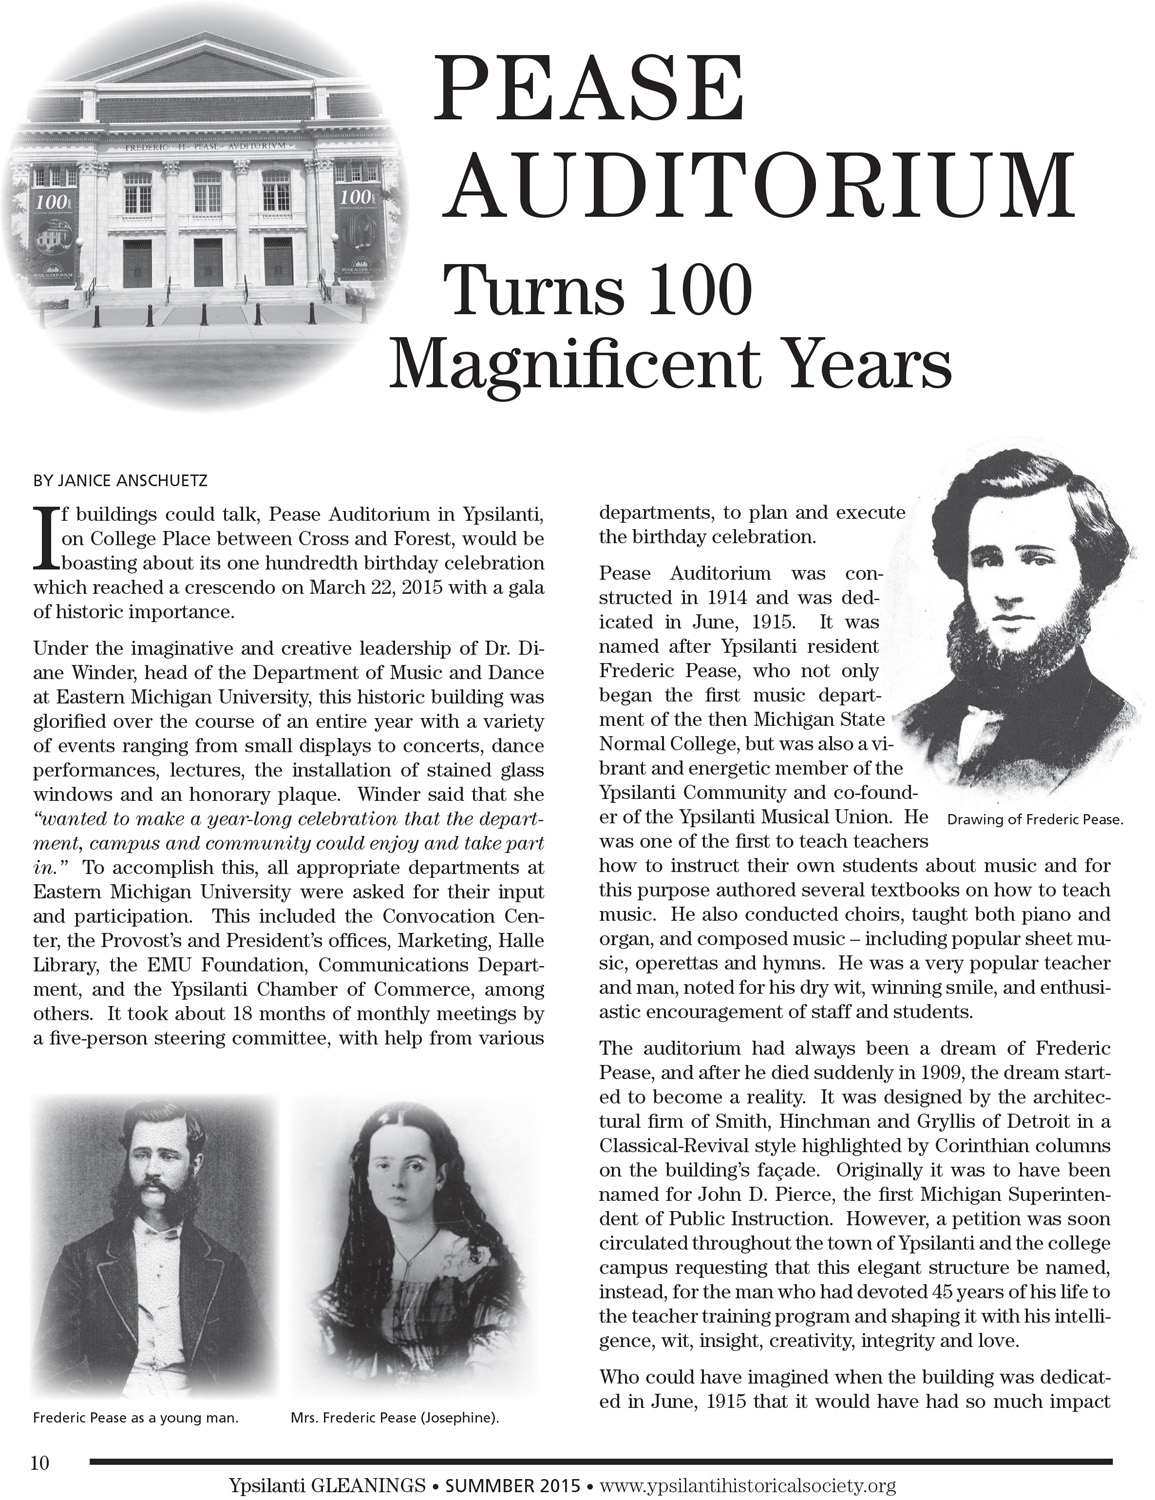 Pease Auditorium Turns 100 Magnificent Years image